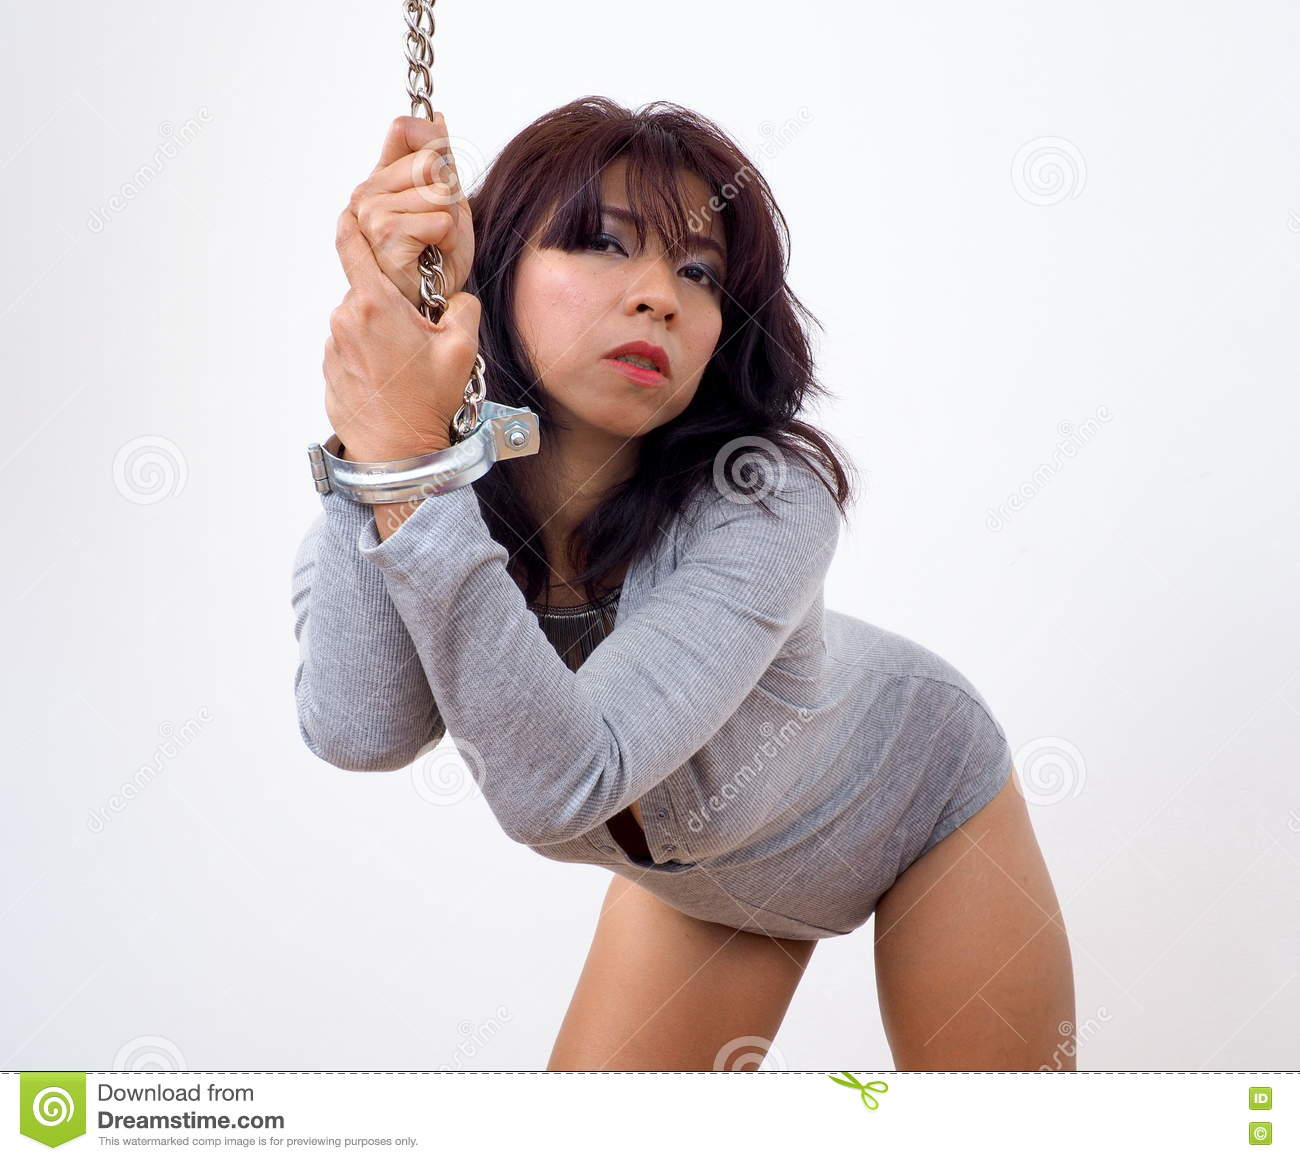 Can recommend asian woman tied up think